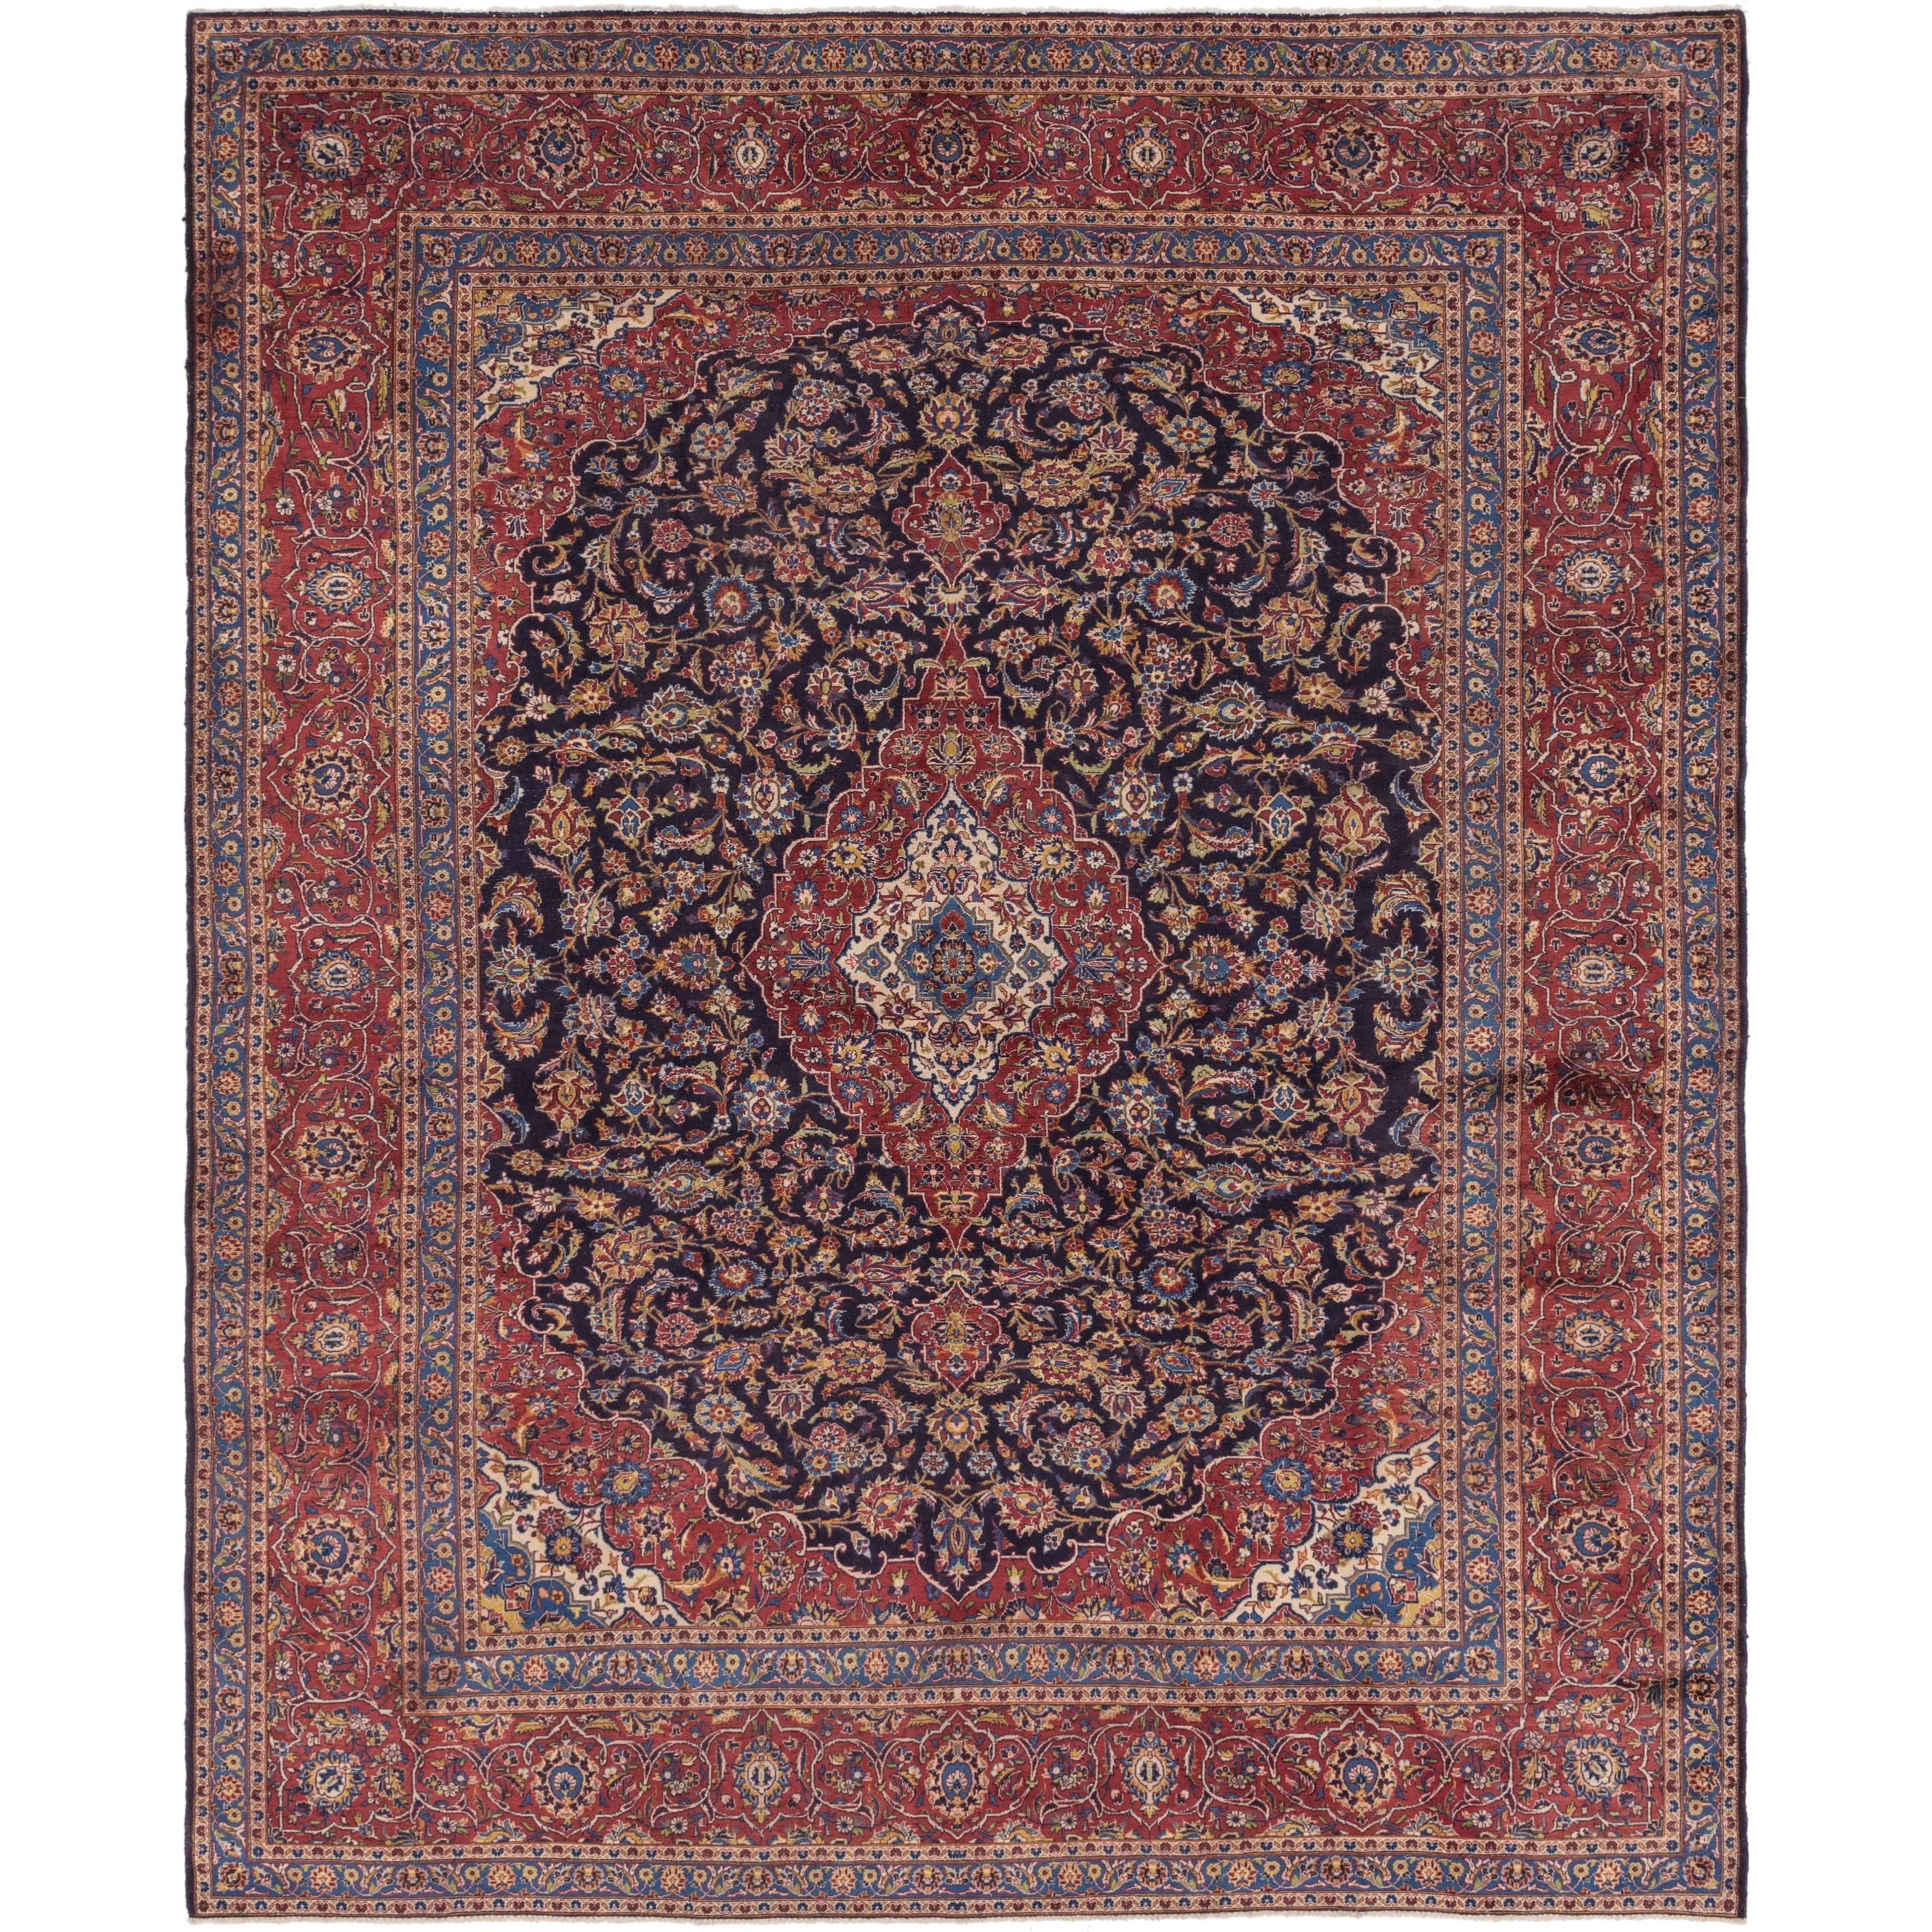 Hand Knotted Kashan Semi Antique Wool Area Rug - 10 2 x 12 4 (Navy blue - 10 2 x 12 4)